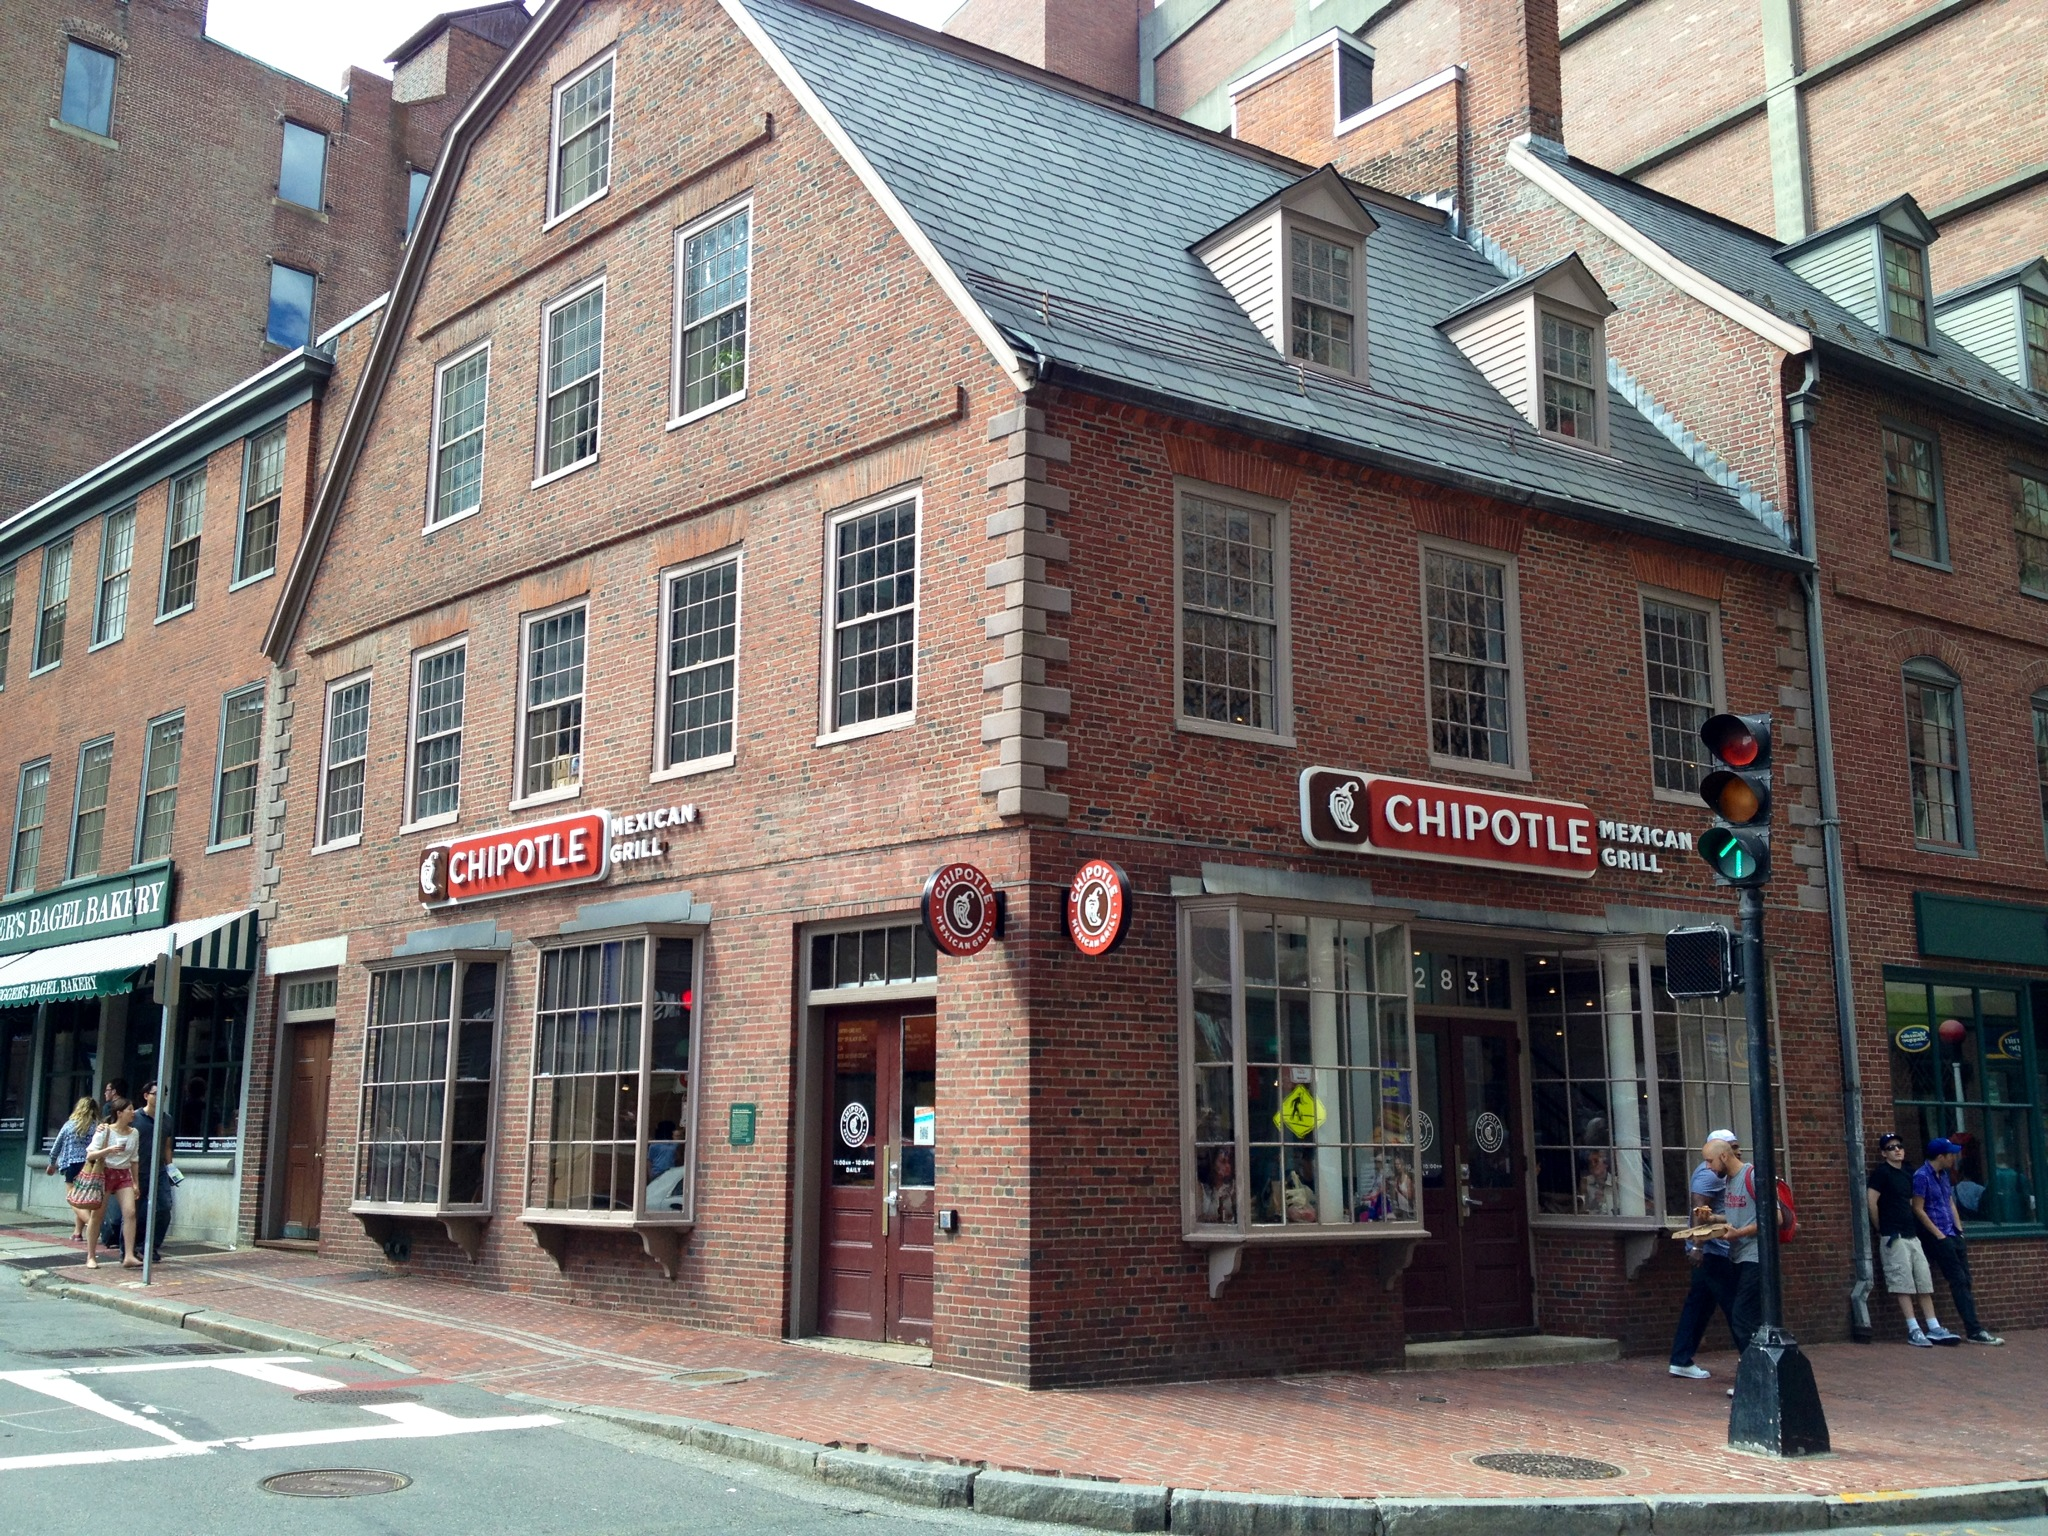 The historical site of the Old Corner Bookstore in Boston, Mass., which is now a Chipotle. Credit: Lakewood Mag.